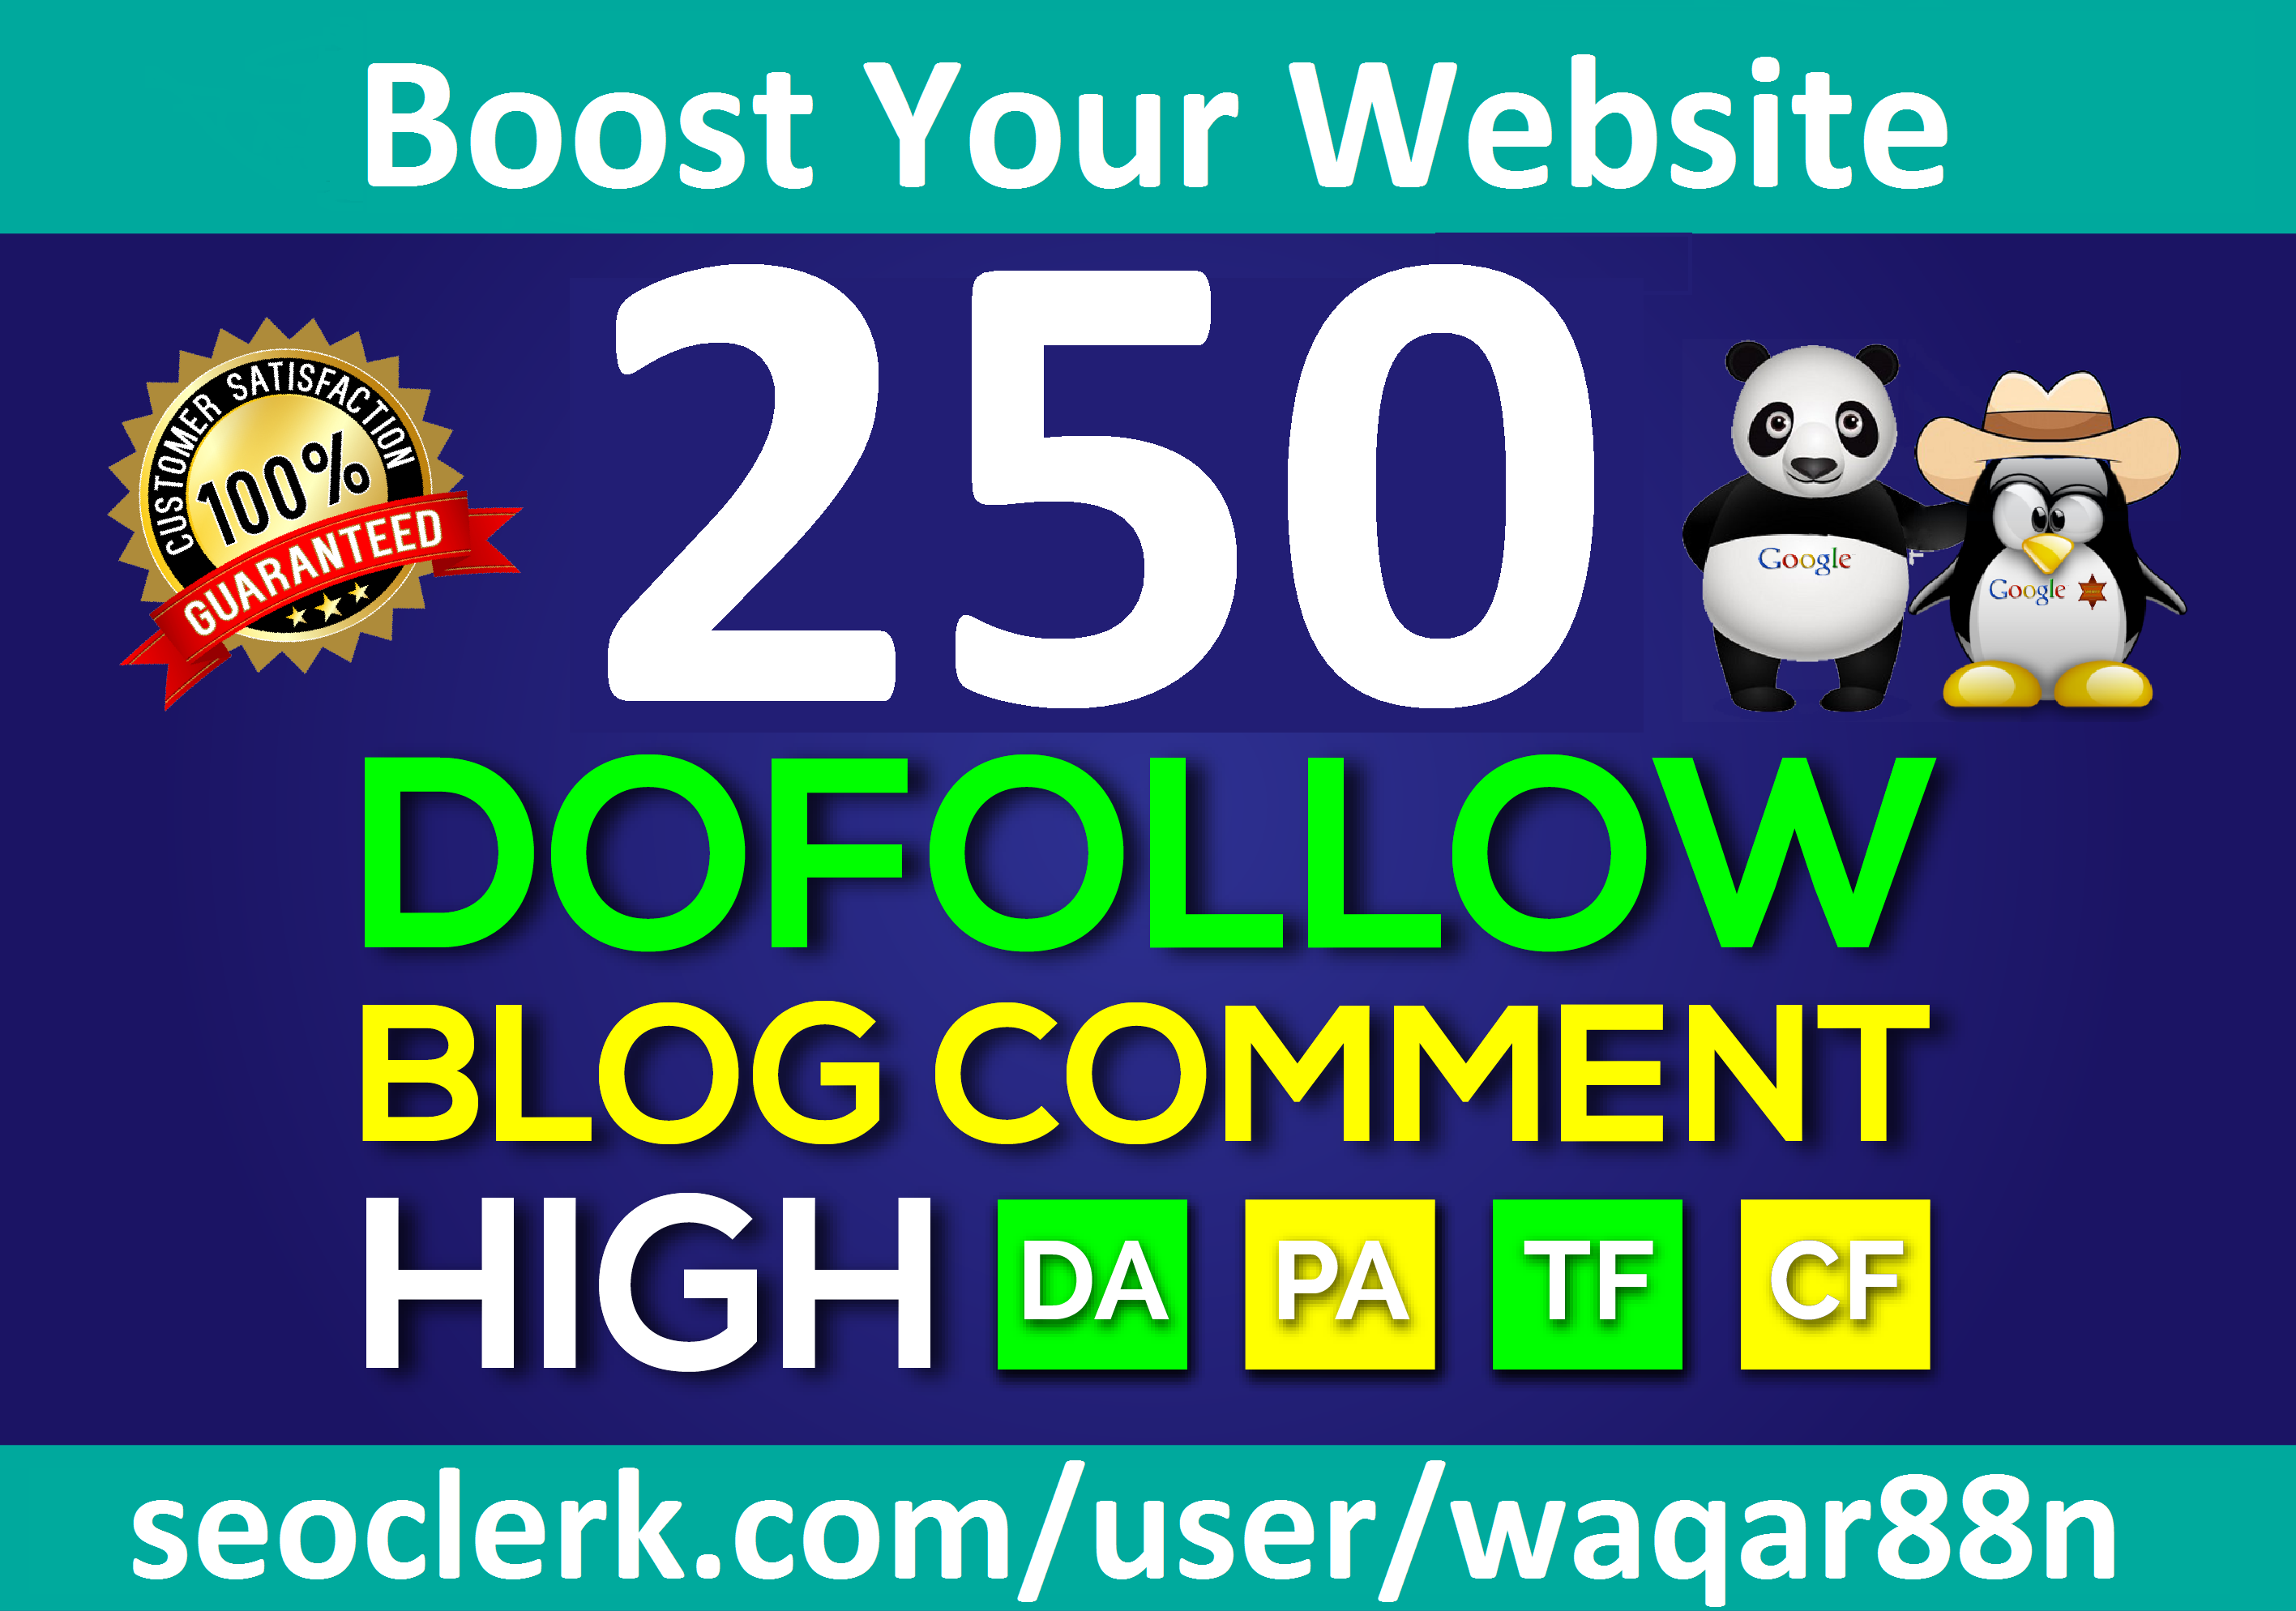 I will Build 250 Dofollow Blog Comments Backlinks On High DA PA